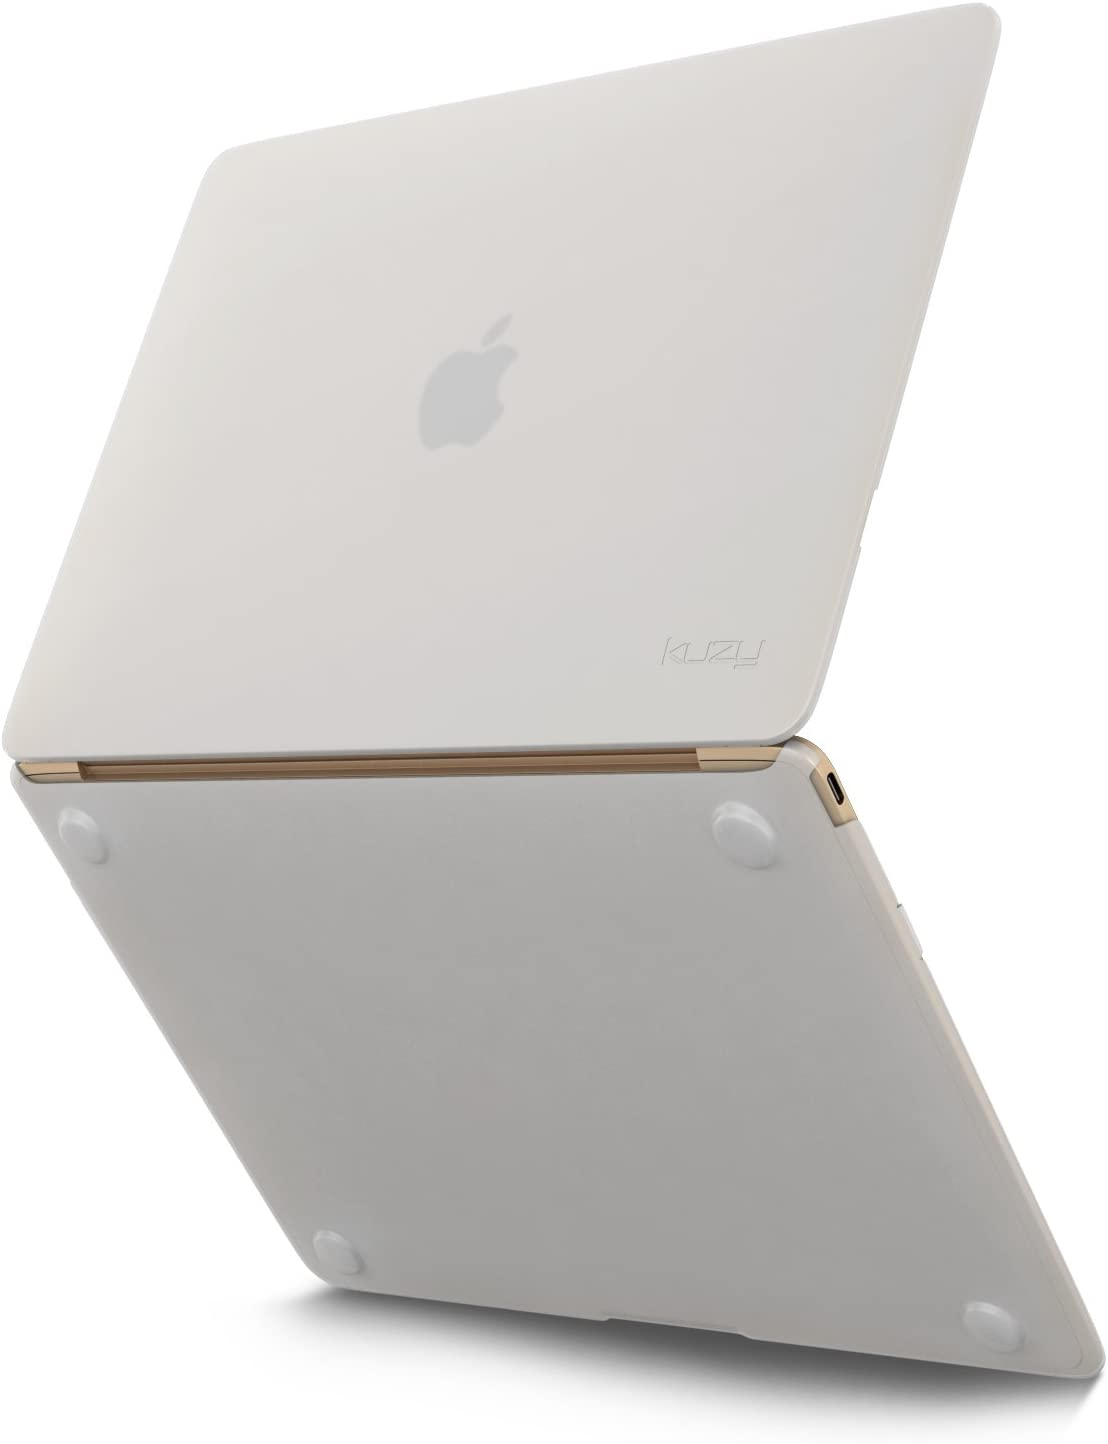 Kuzy MacBook 12 inch Case Silicone Touch Cover A1534 (Newest Version) - Frost/White